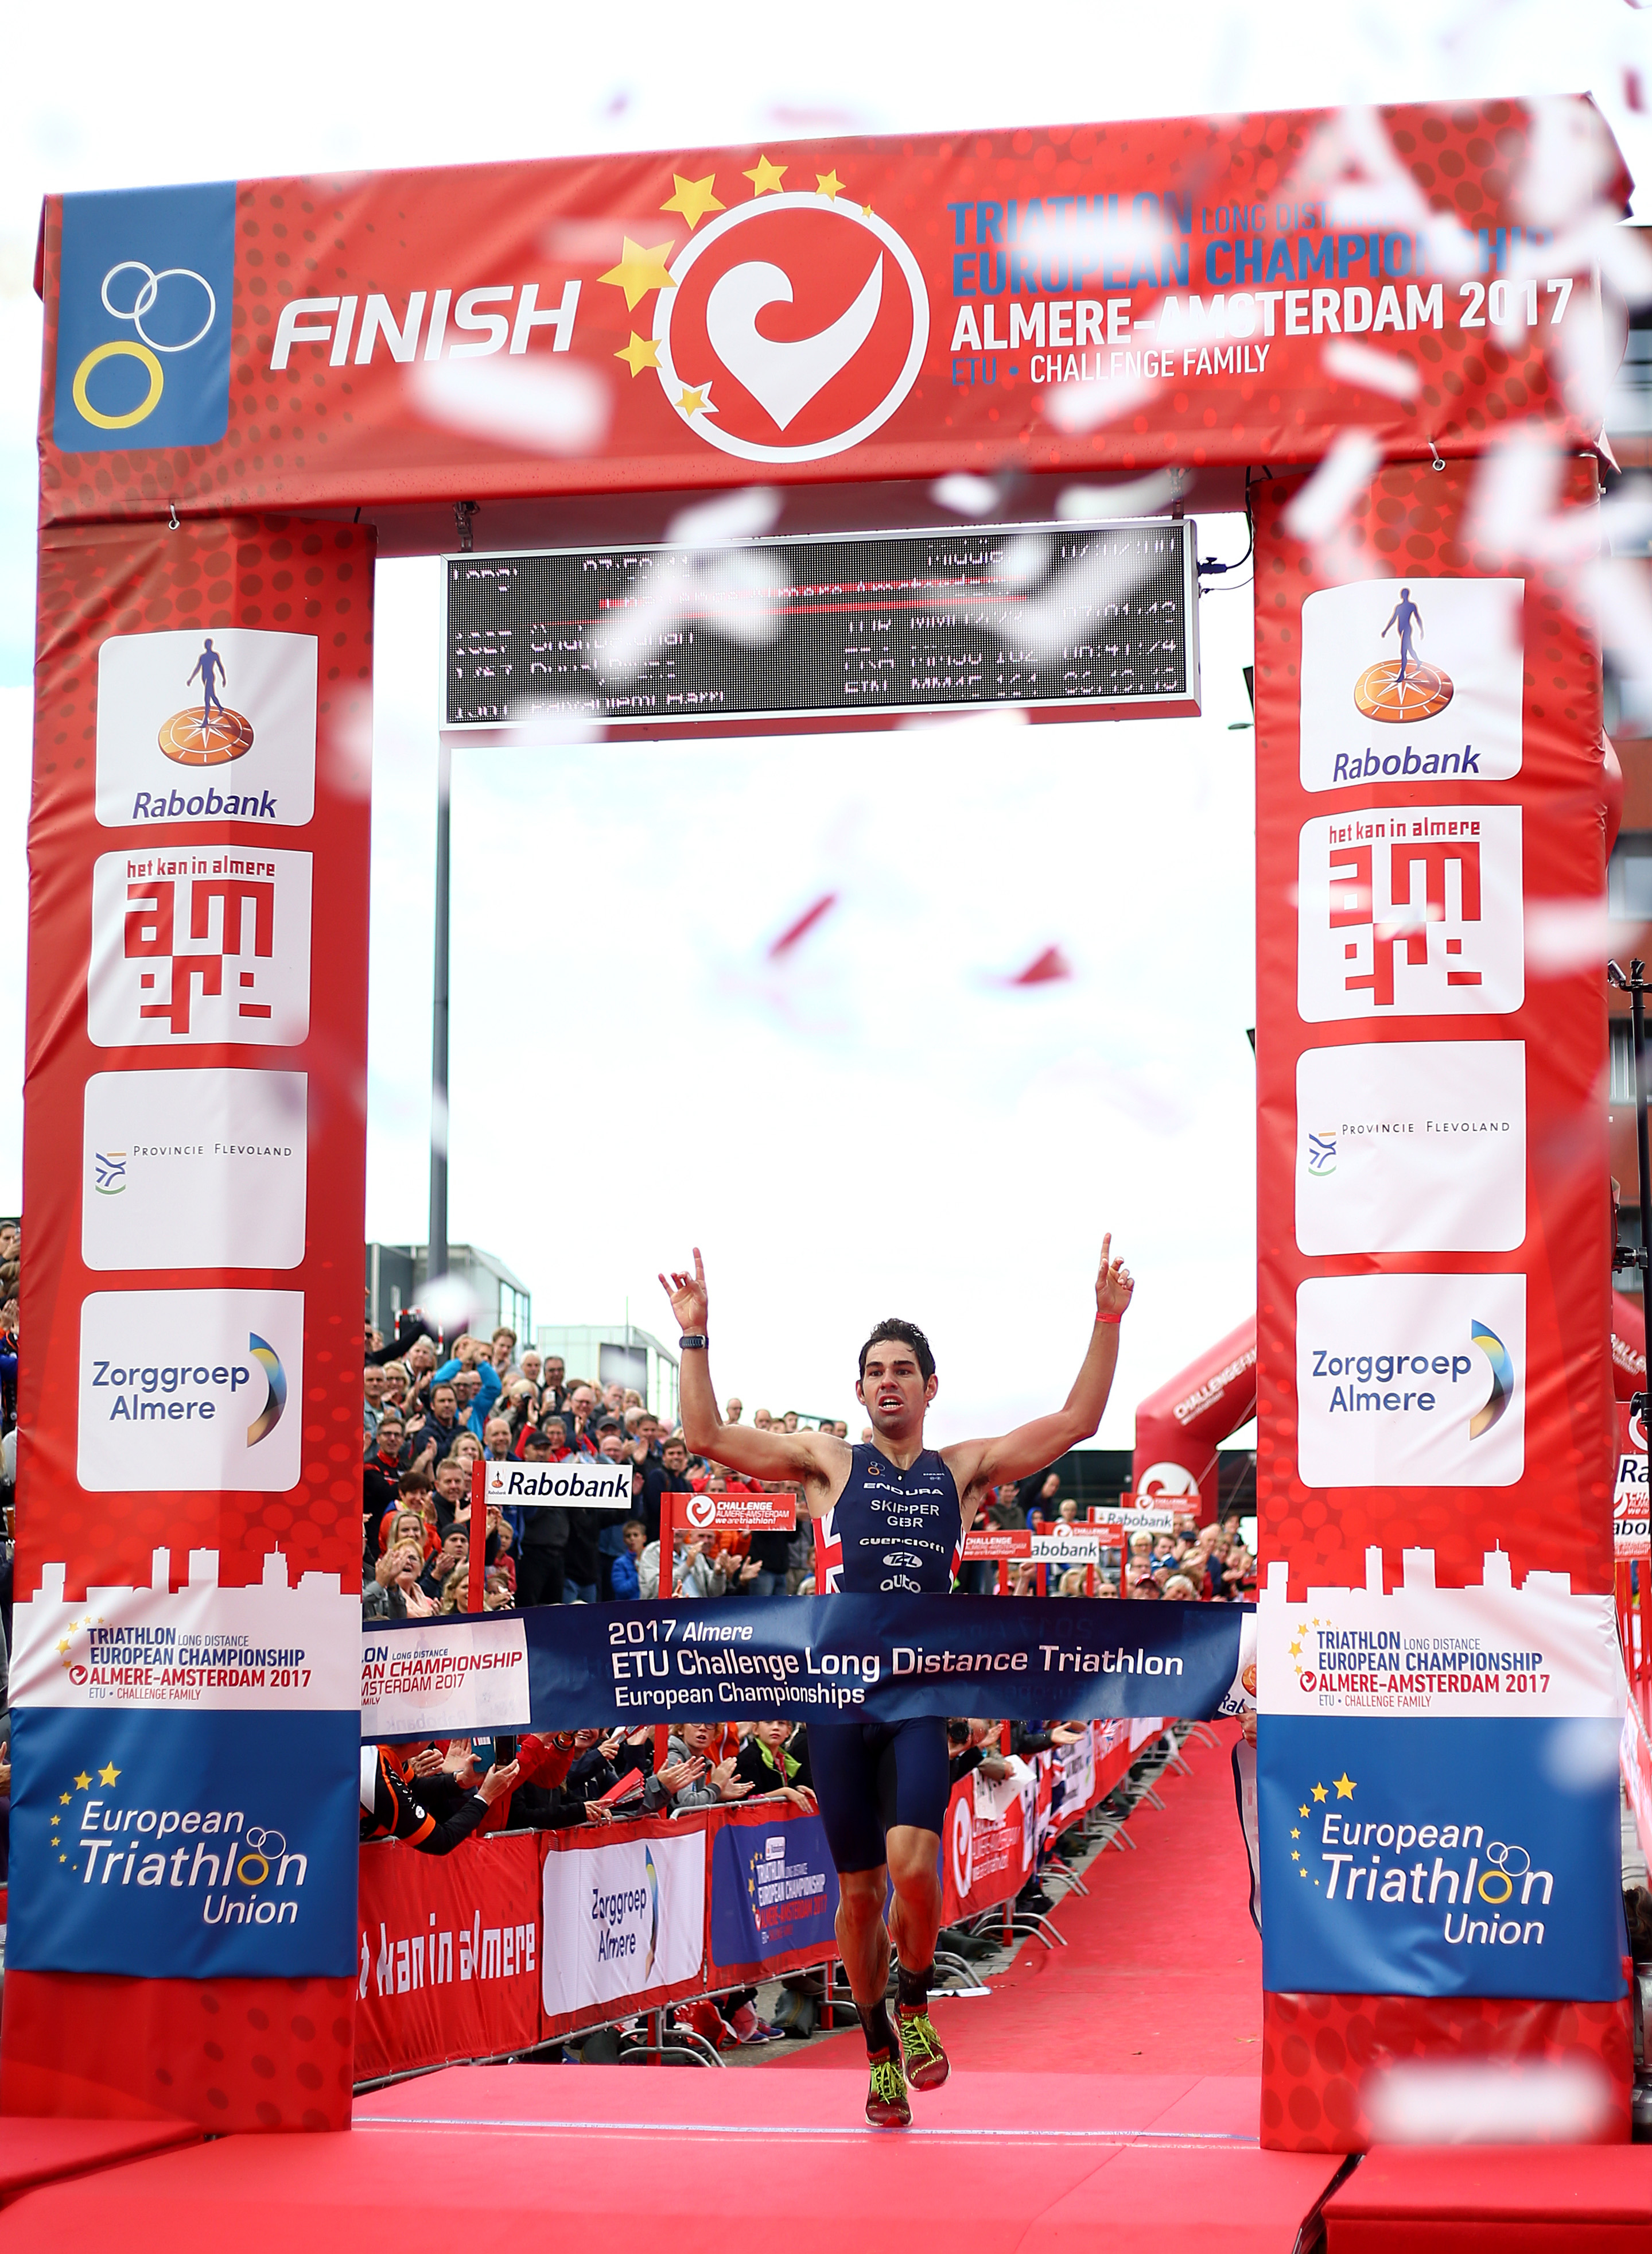 ALMERE, NETHERLANDS - SEPTEMBER 08: Joe Skipper of Great Britain celebrates as he wins the means race during Challenge Almere-Amsterdam on September 8, 2017 in Almere, Netherlands. (Photo by Charlie Crowhurst/Getty Images)